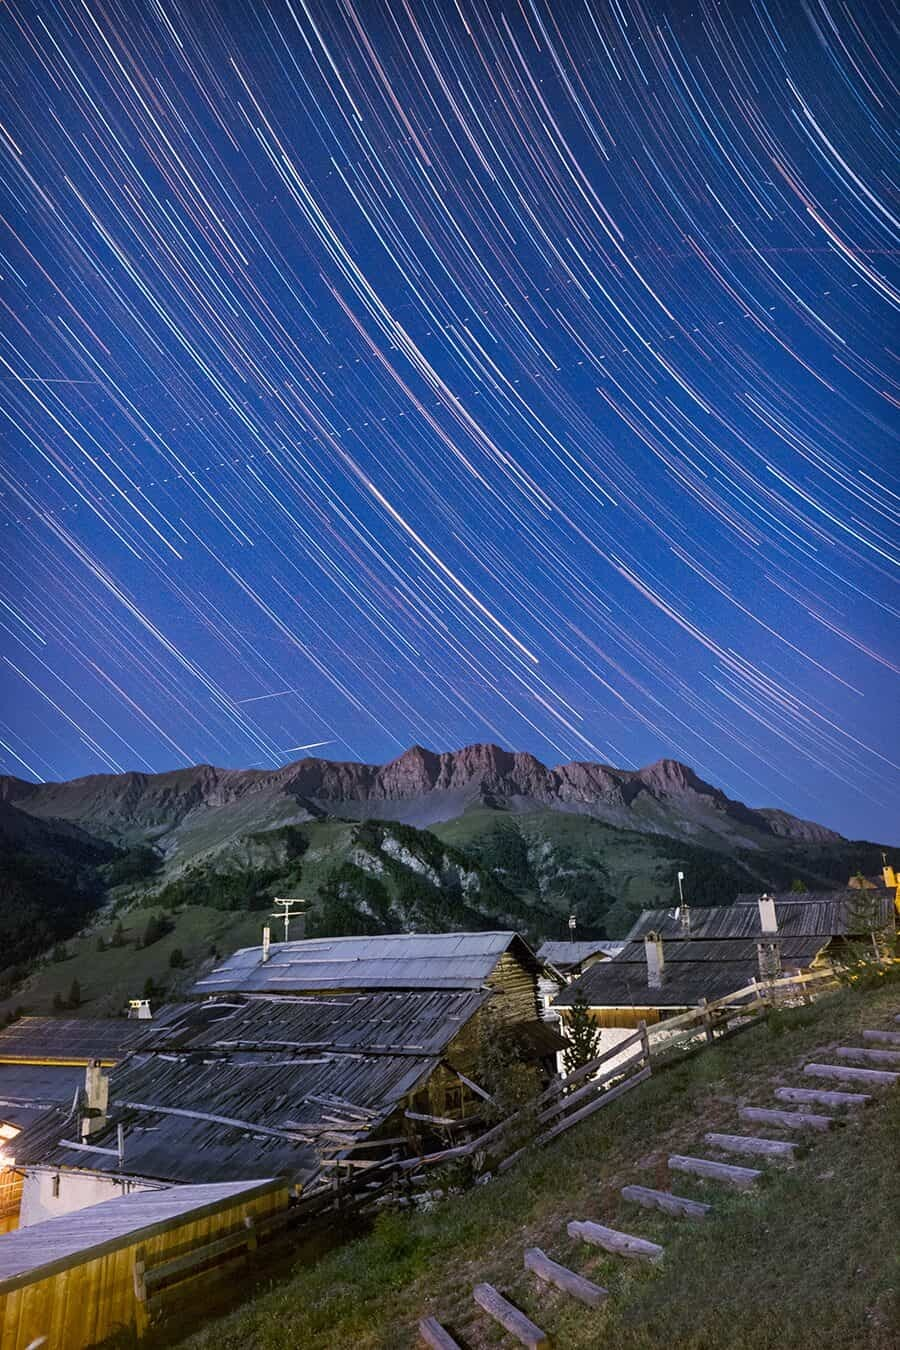 How to Take Star Trails French Alps